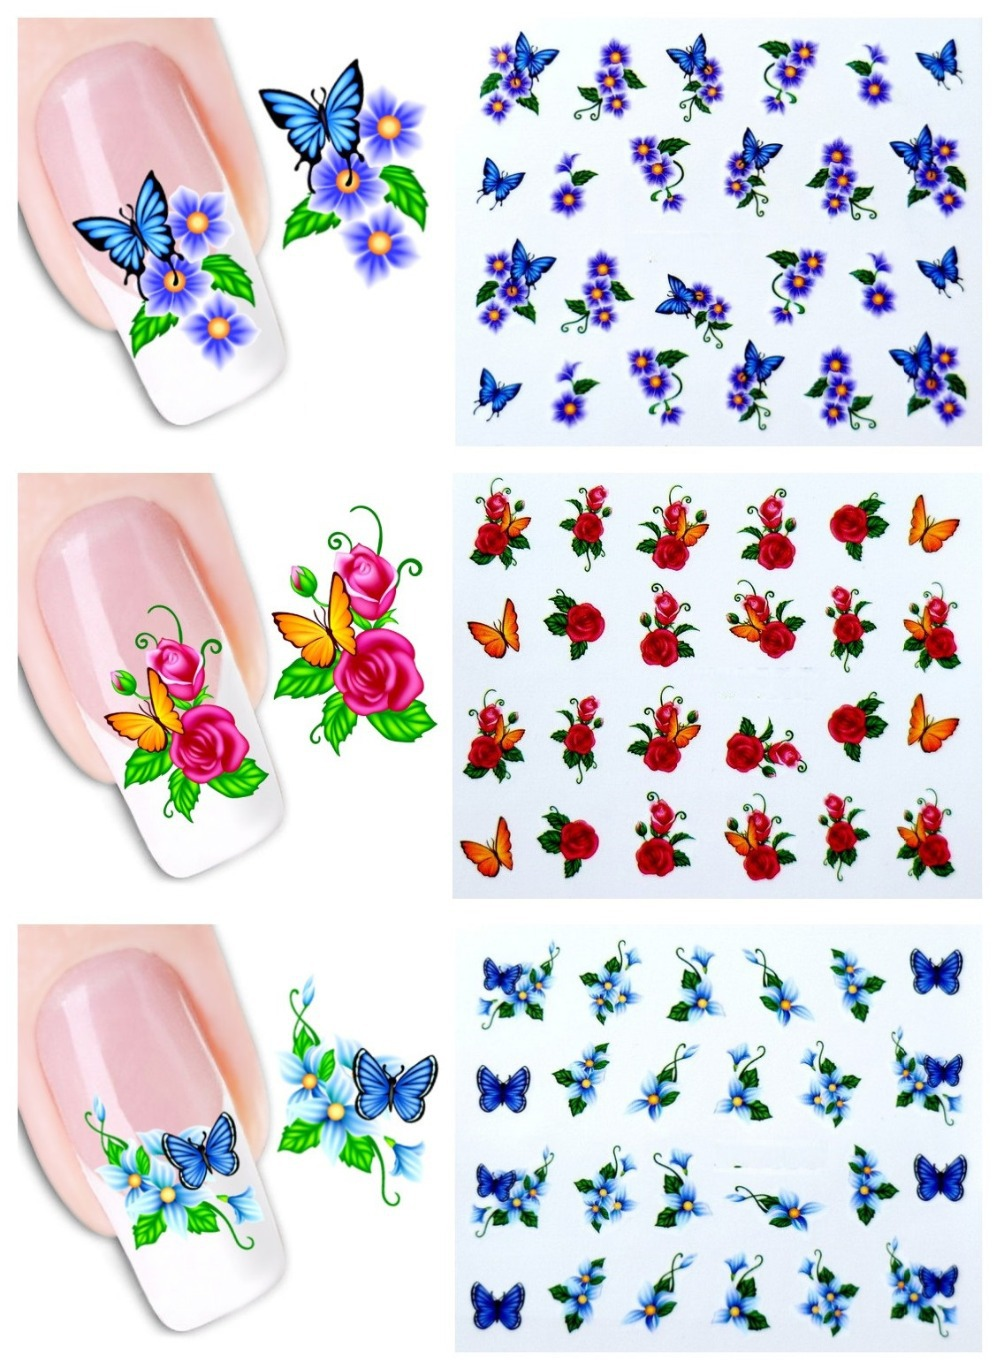 50sheets Watermark Beauty Y Diy Nail Art Water Transfer Stickers Flower With Erfly Tips Decals Tools Setxf1051 1100 In From